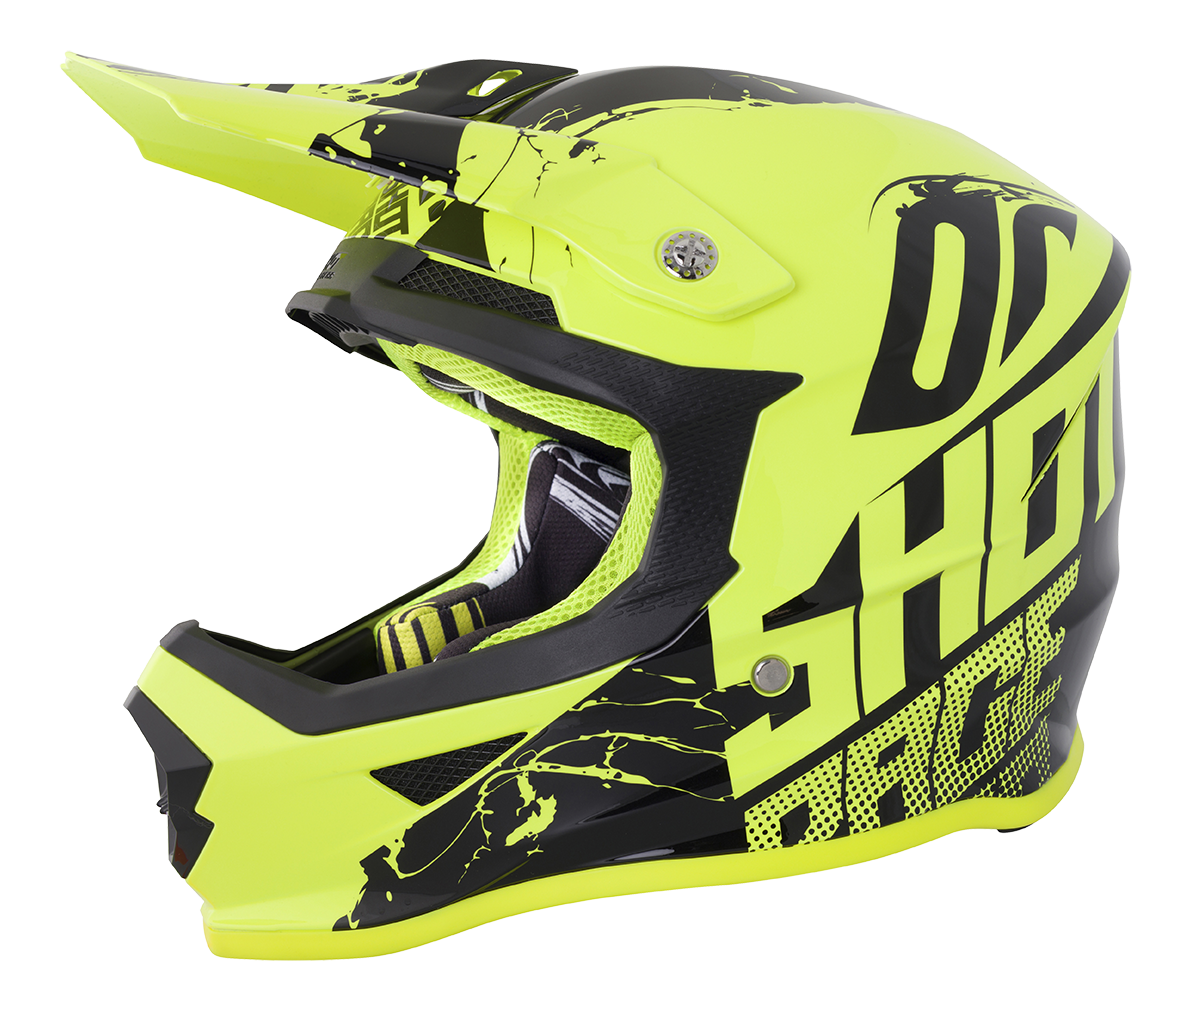 SHOT RACE GEAR 2018  HELMA III FURIOUS VENOM NEON YELLOW BRILLANT